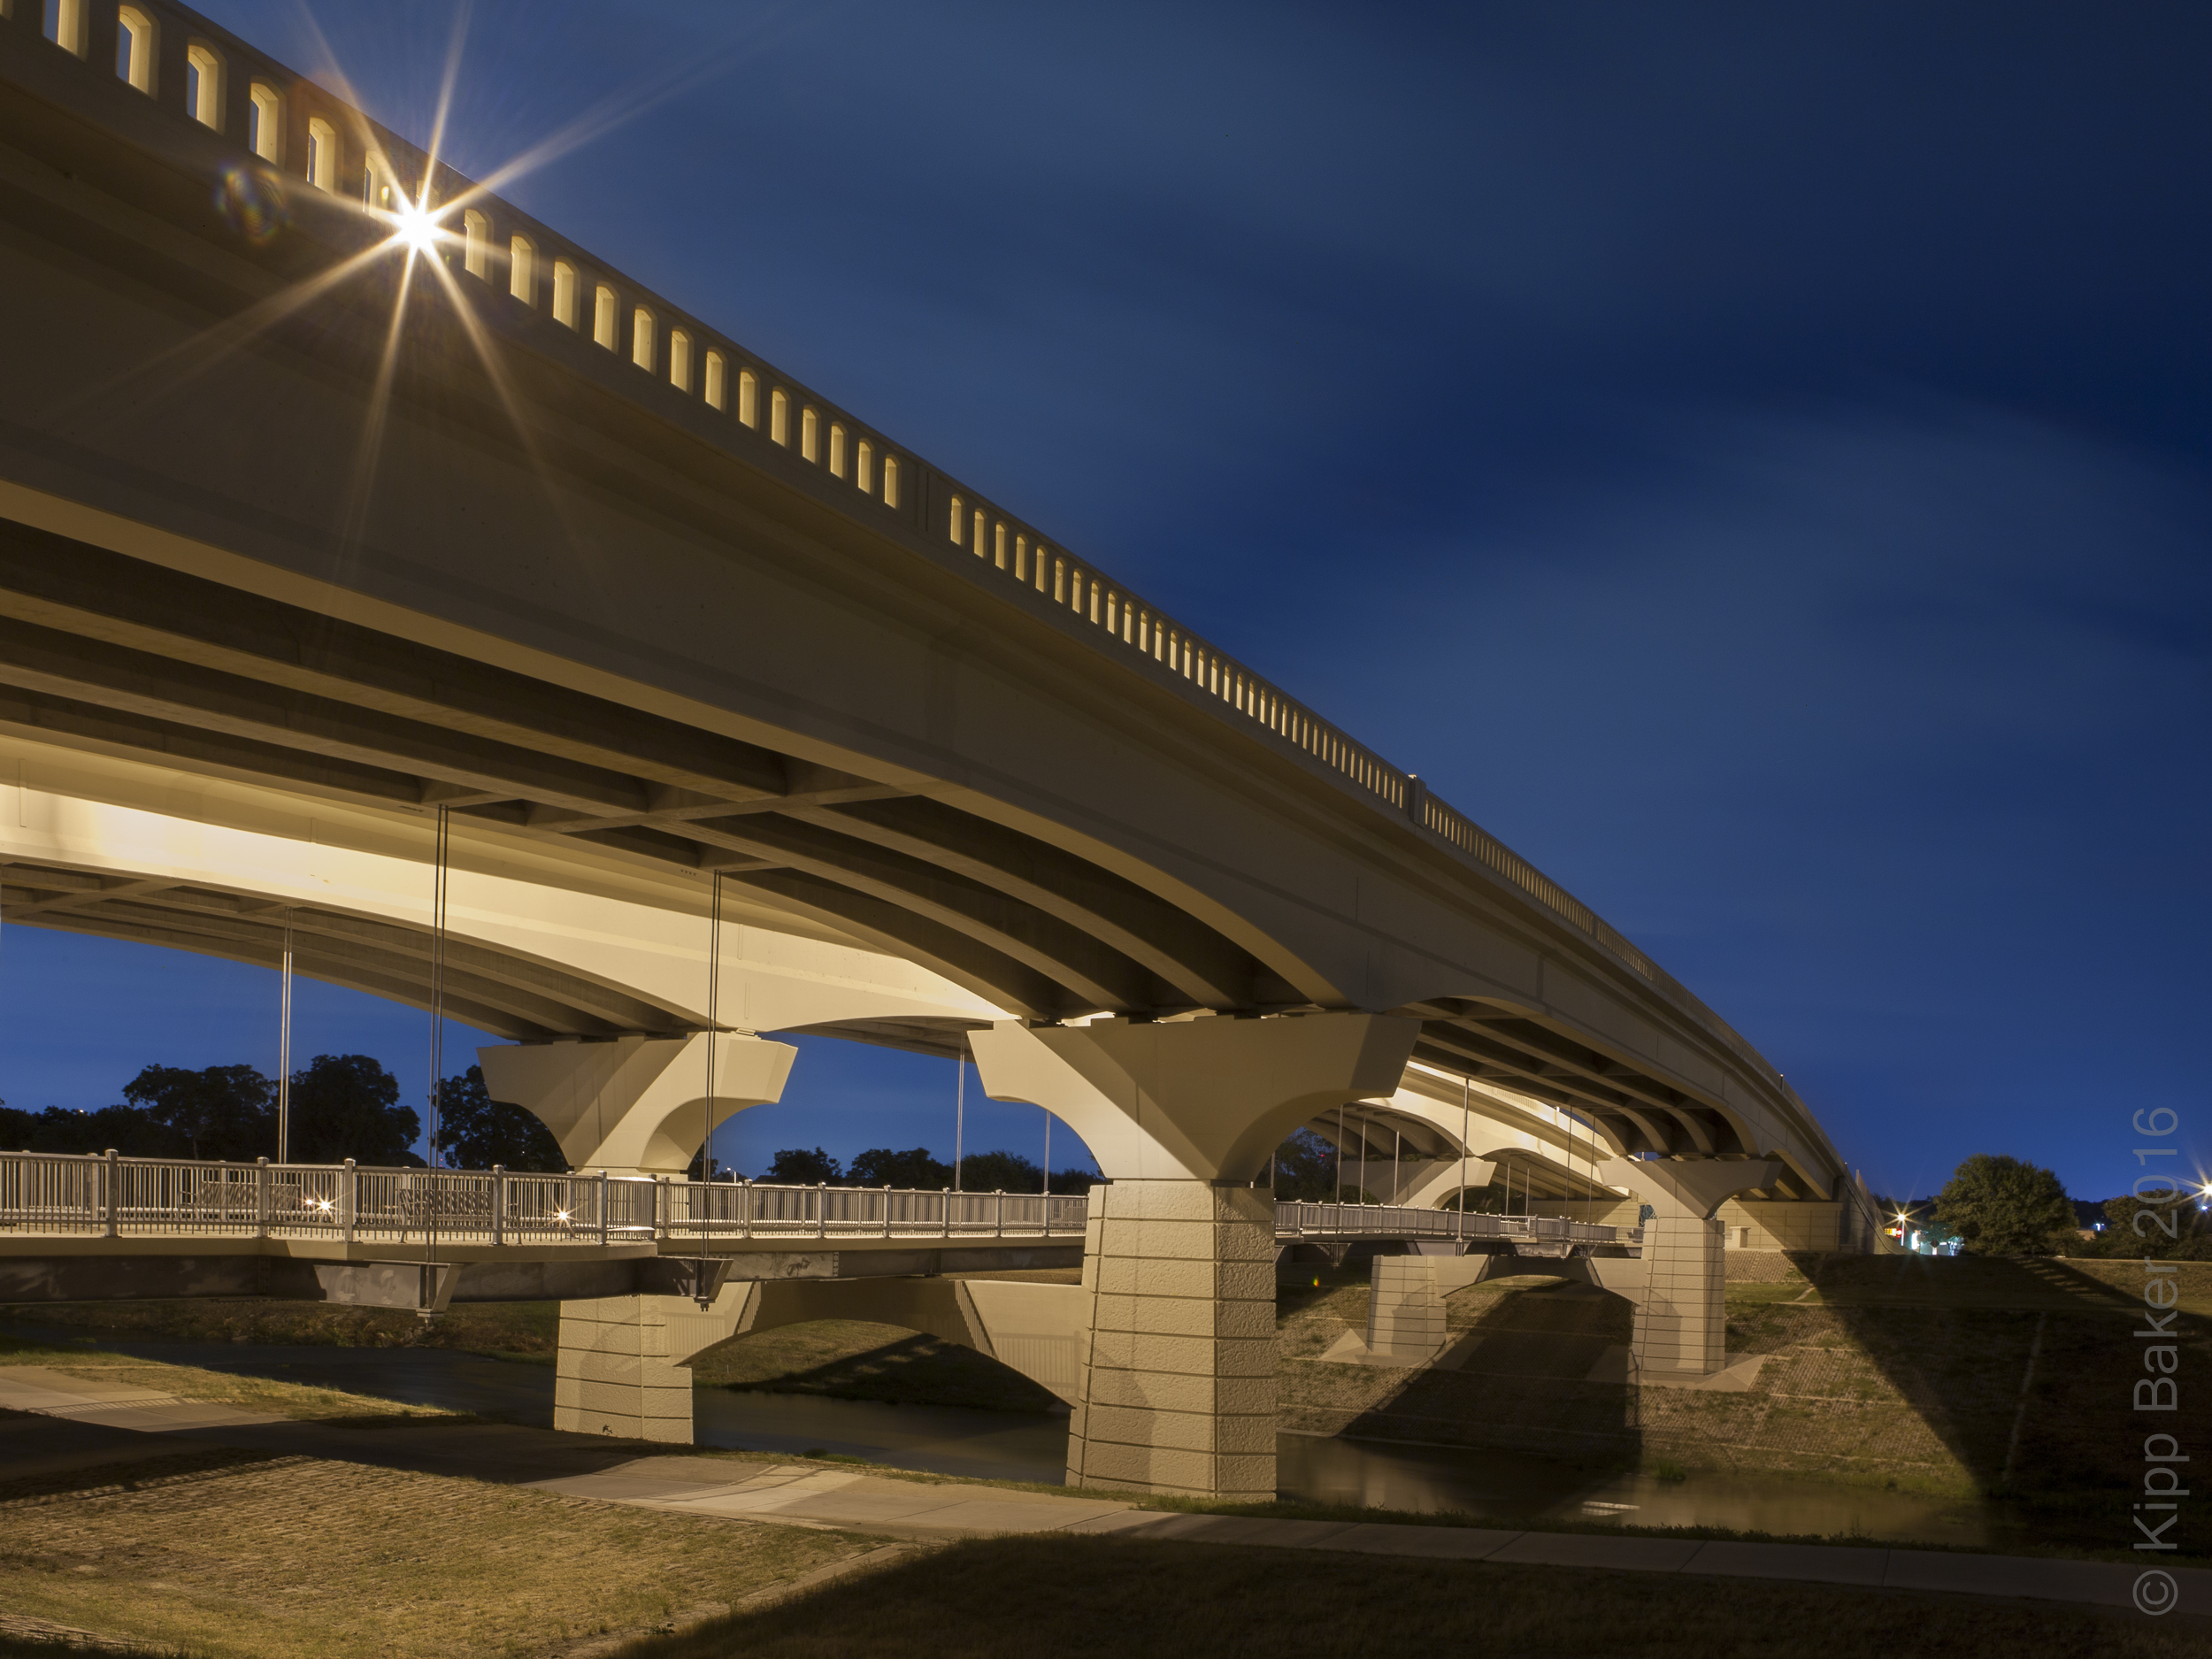 Clearfork Main Street Bridge in Fort Worth, Texas arches from high left to low right at twilight.